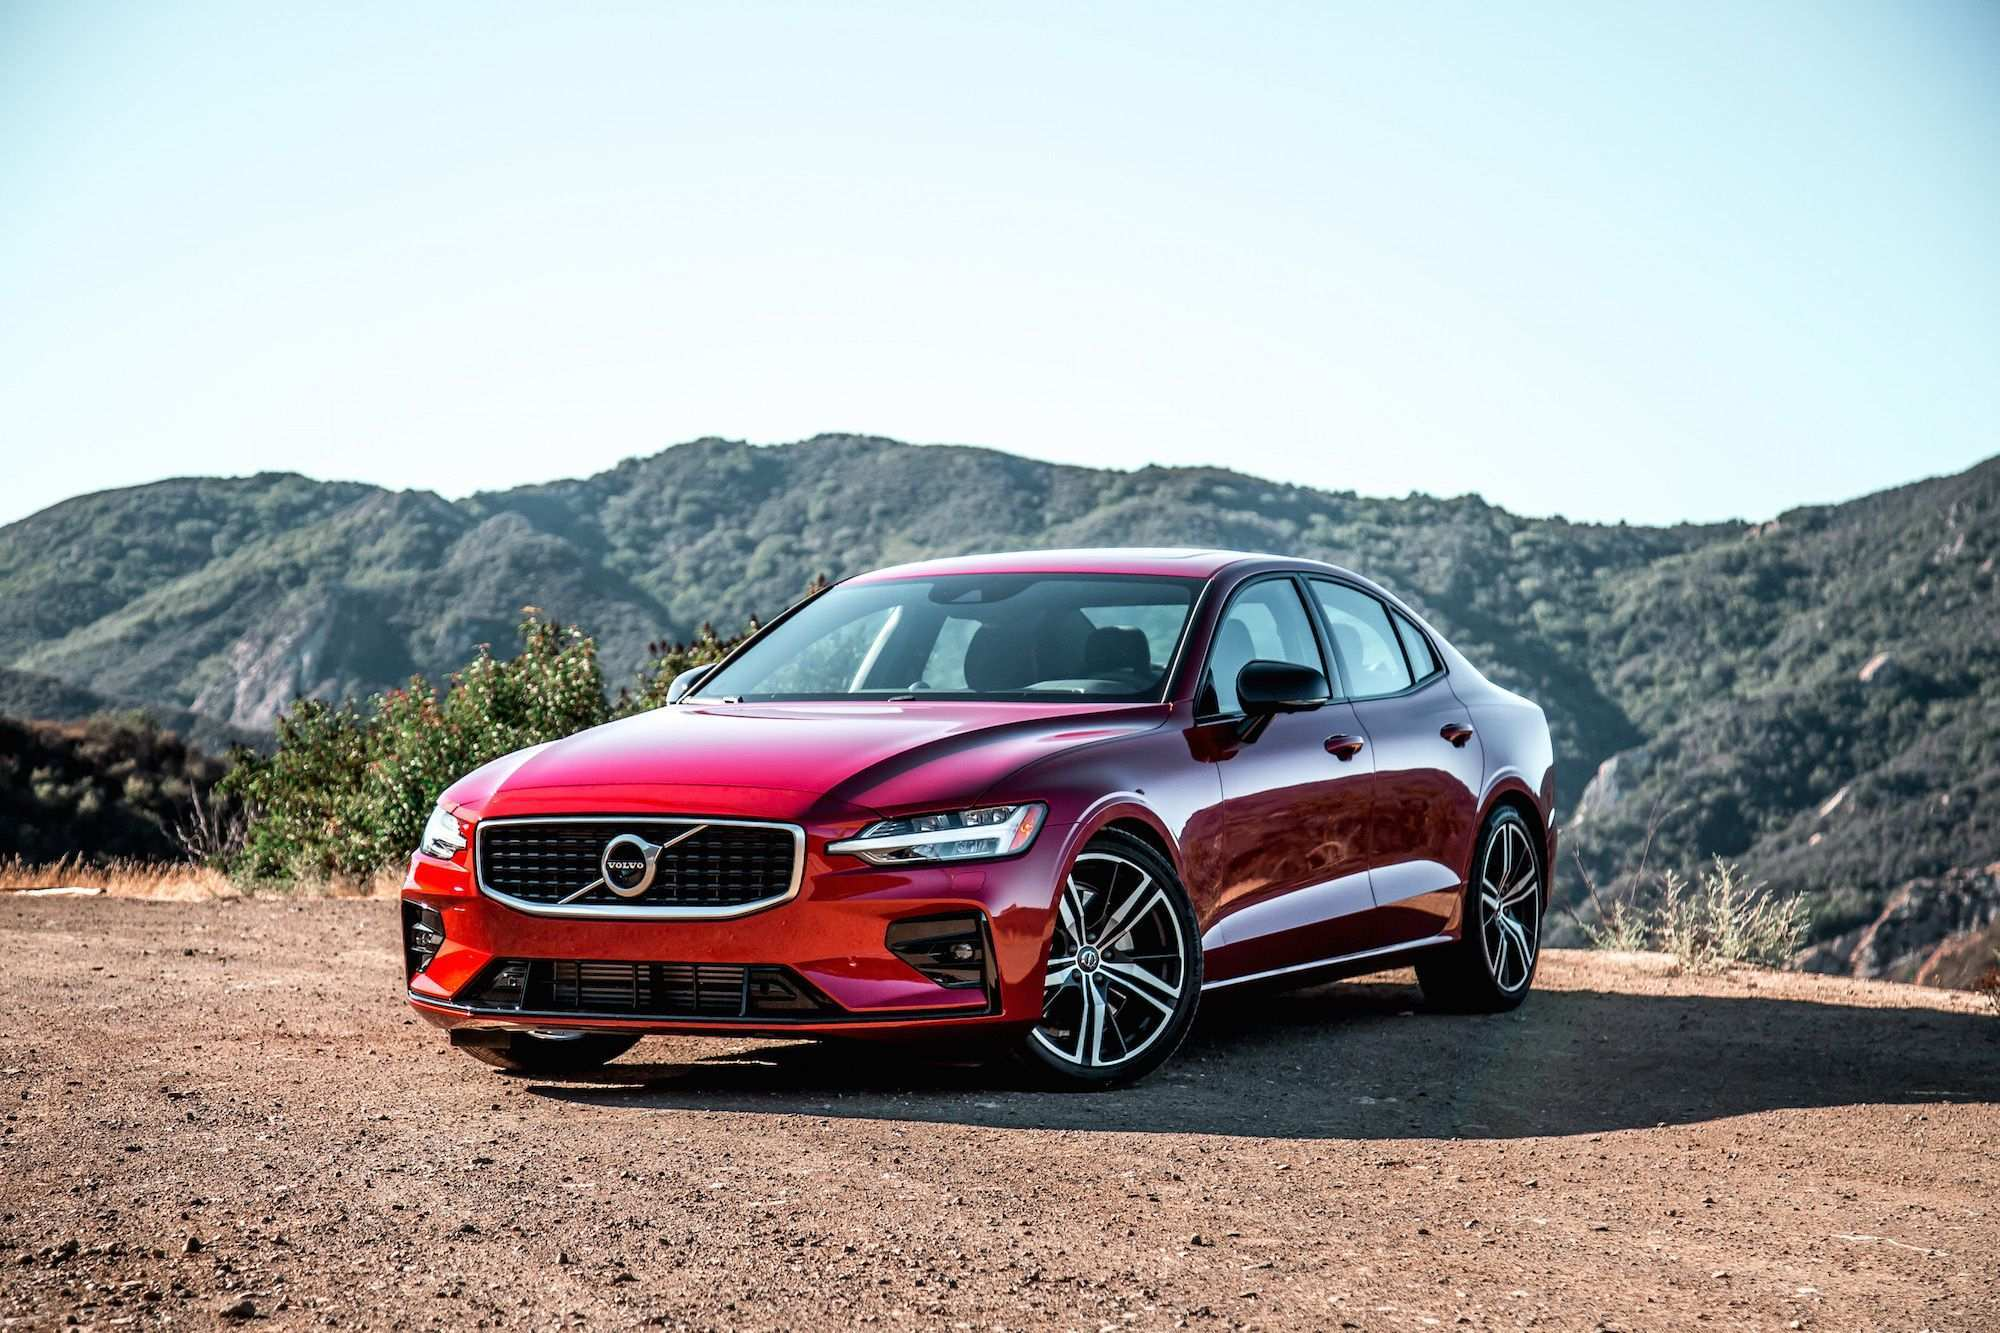 60 All New Volvo Open 2020 Pricing